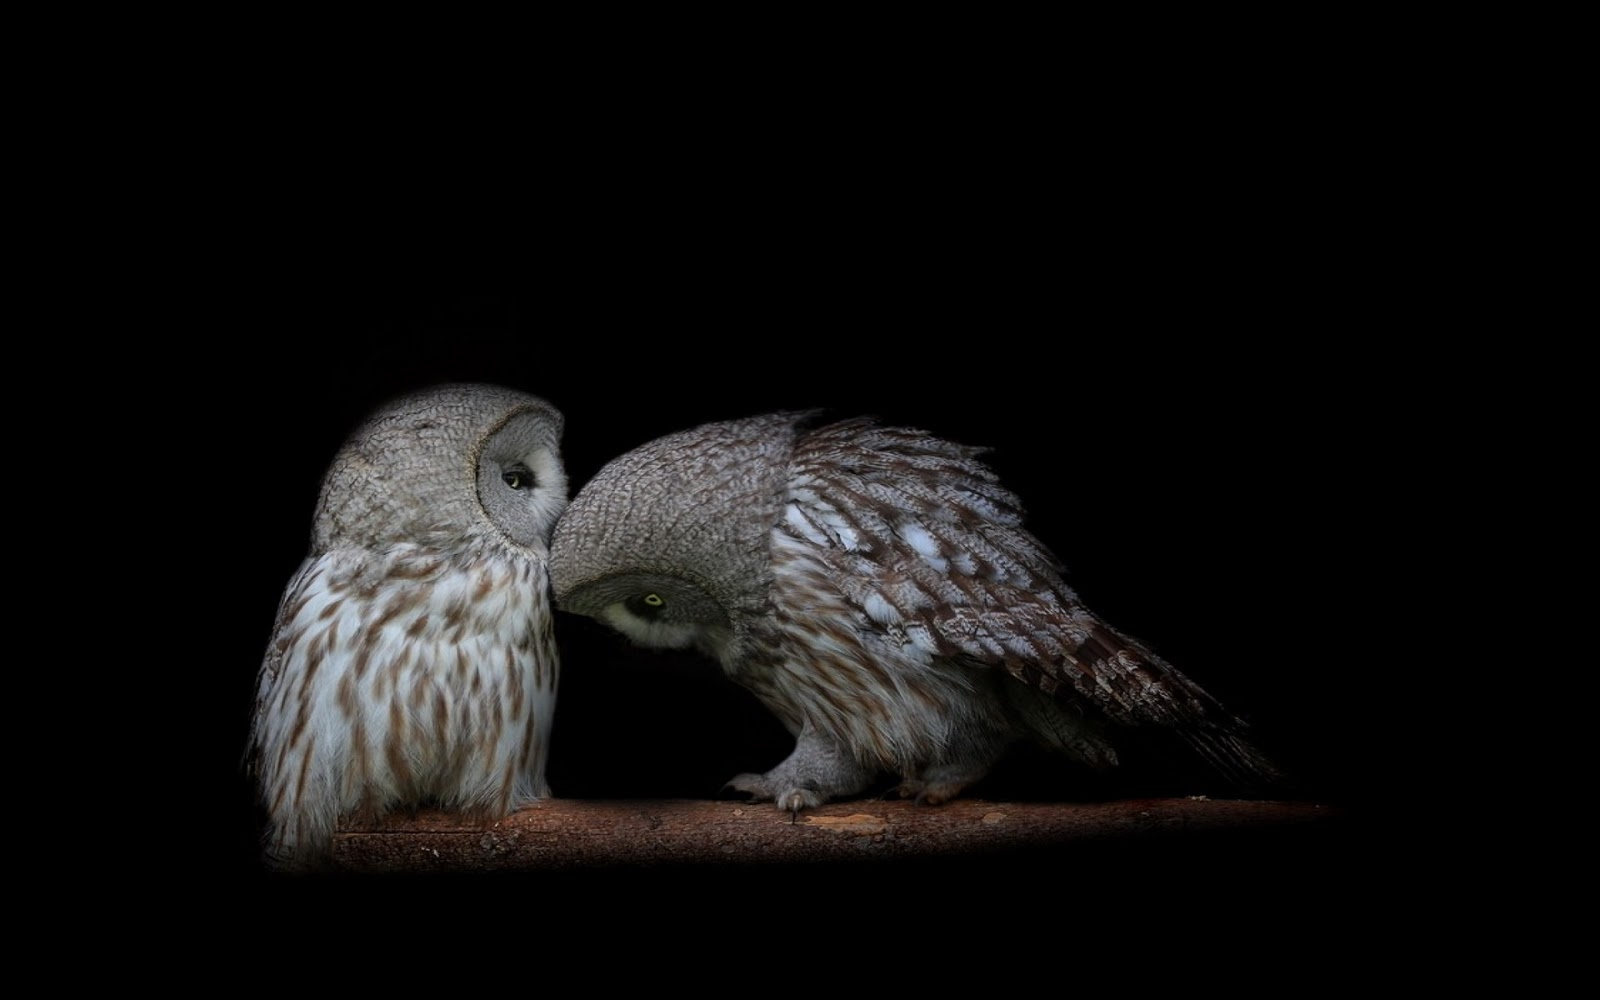 hd owl wallpapers owl pictures hd animal wallpapers